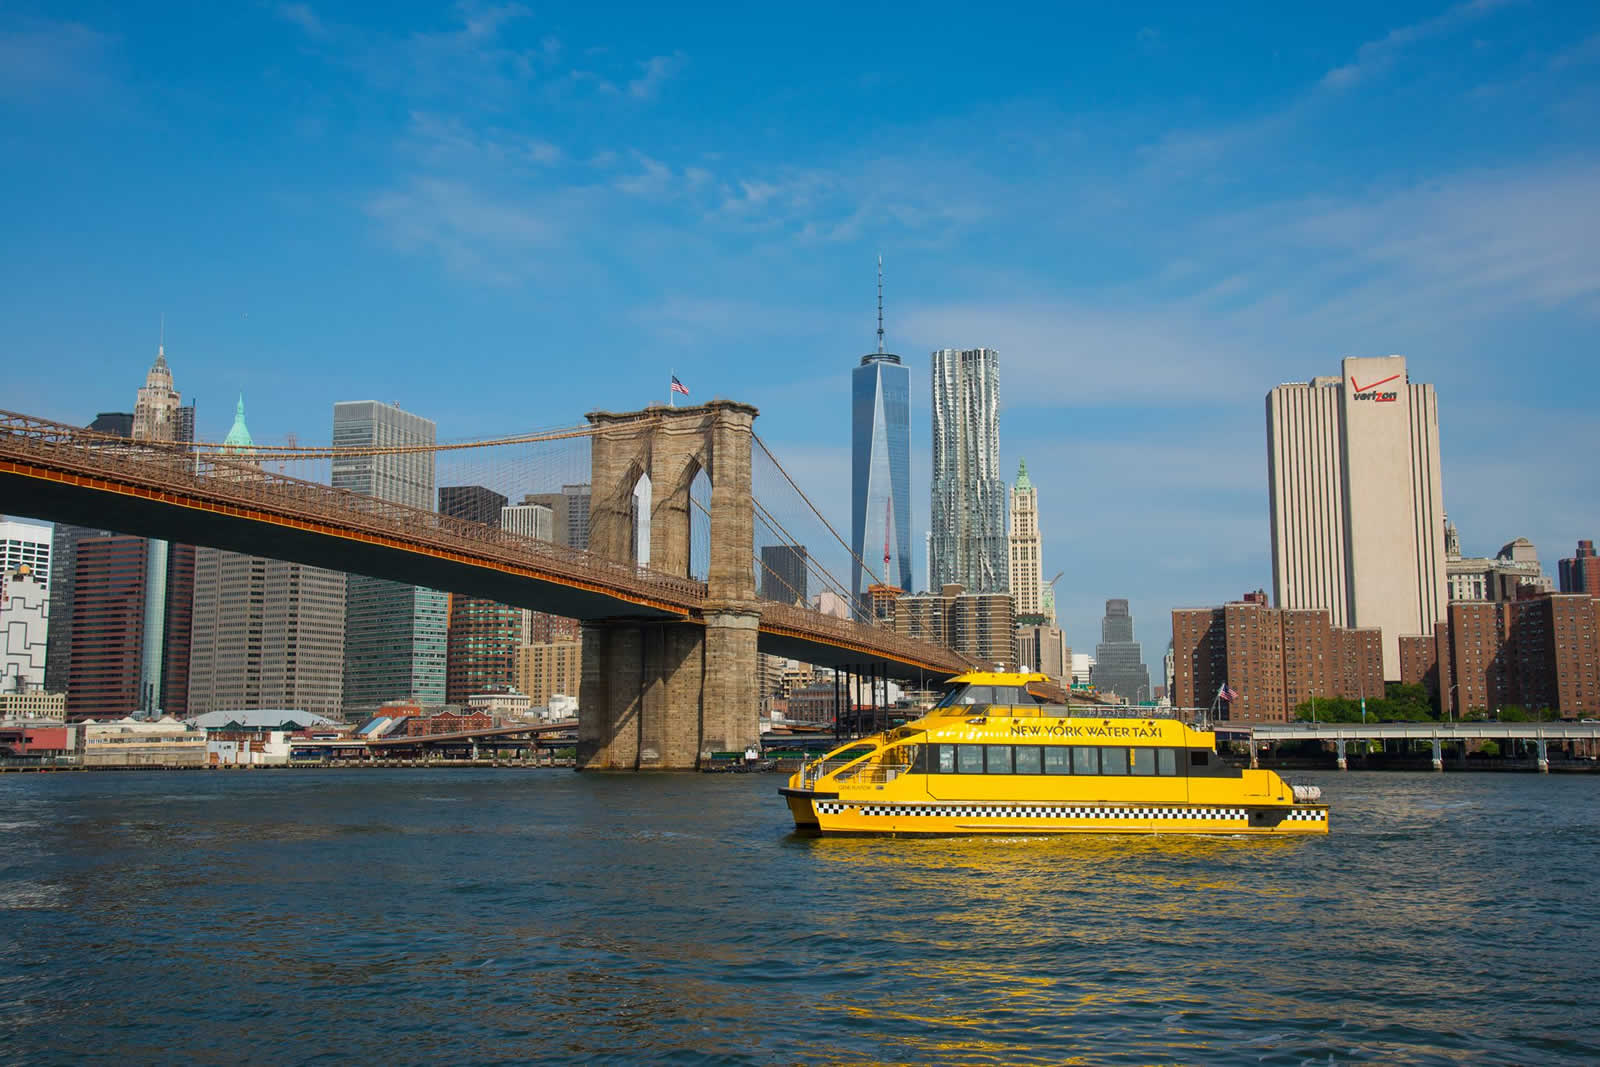 Les Water Taxis de New York  Les taxis bateaux  New York